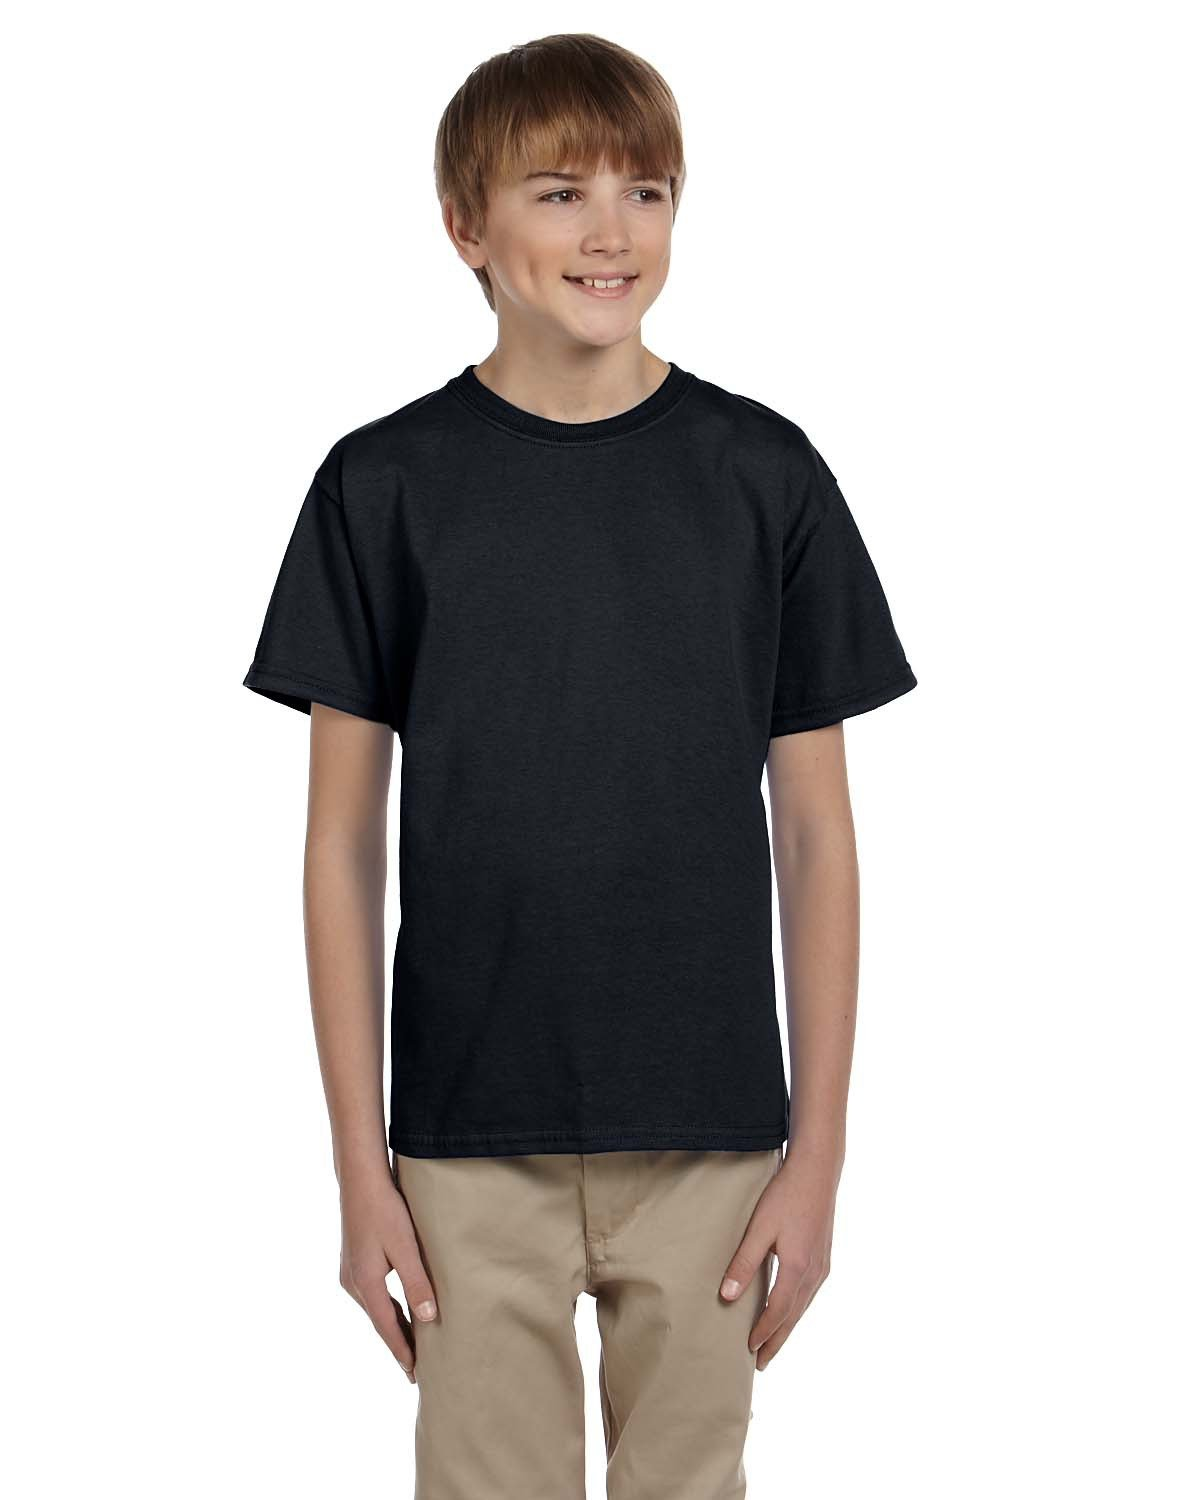 Fruit of the Loom Youth HD Cotton™ T-Shirt BLACK